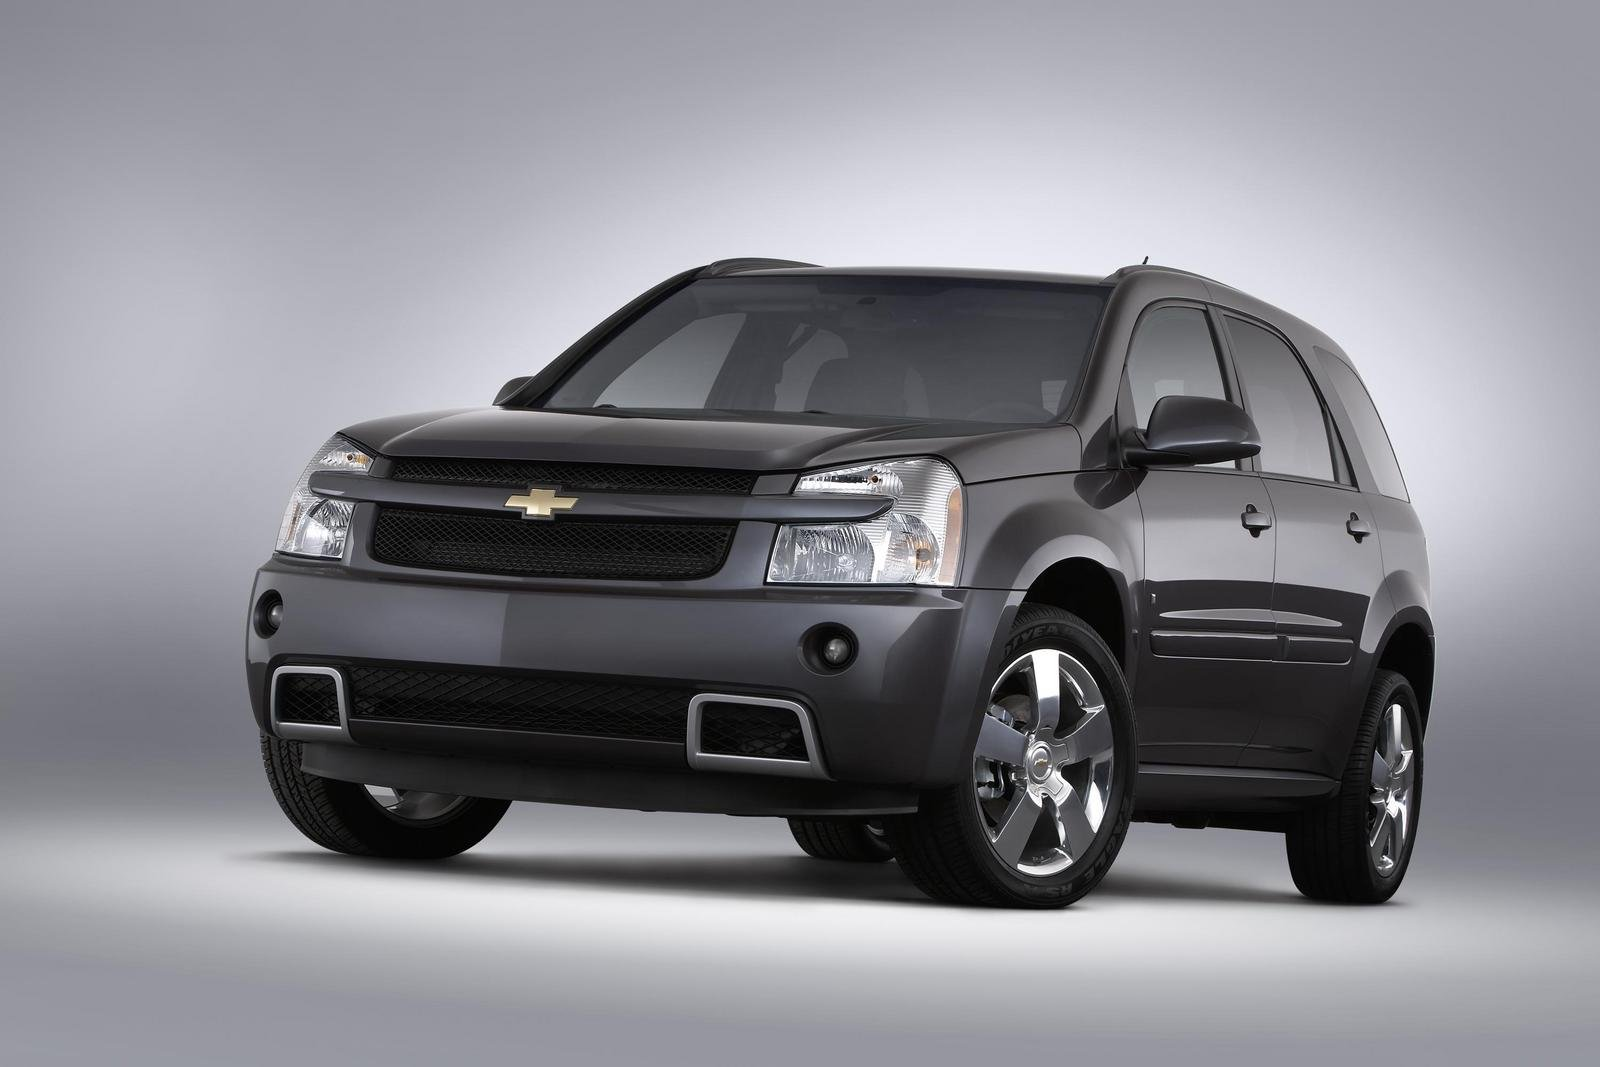 2008 Chevrolet Equinox Sport Review - Top Speed